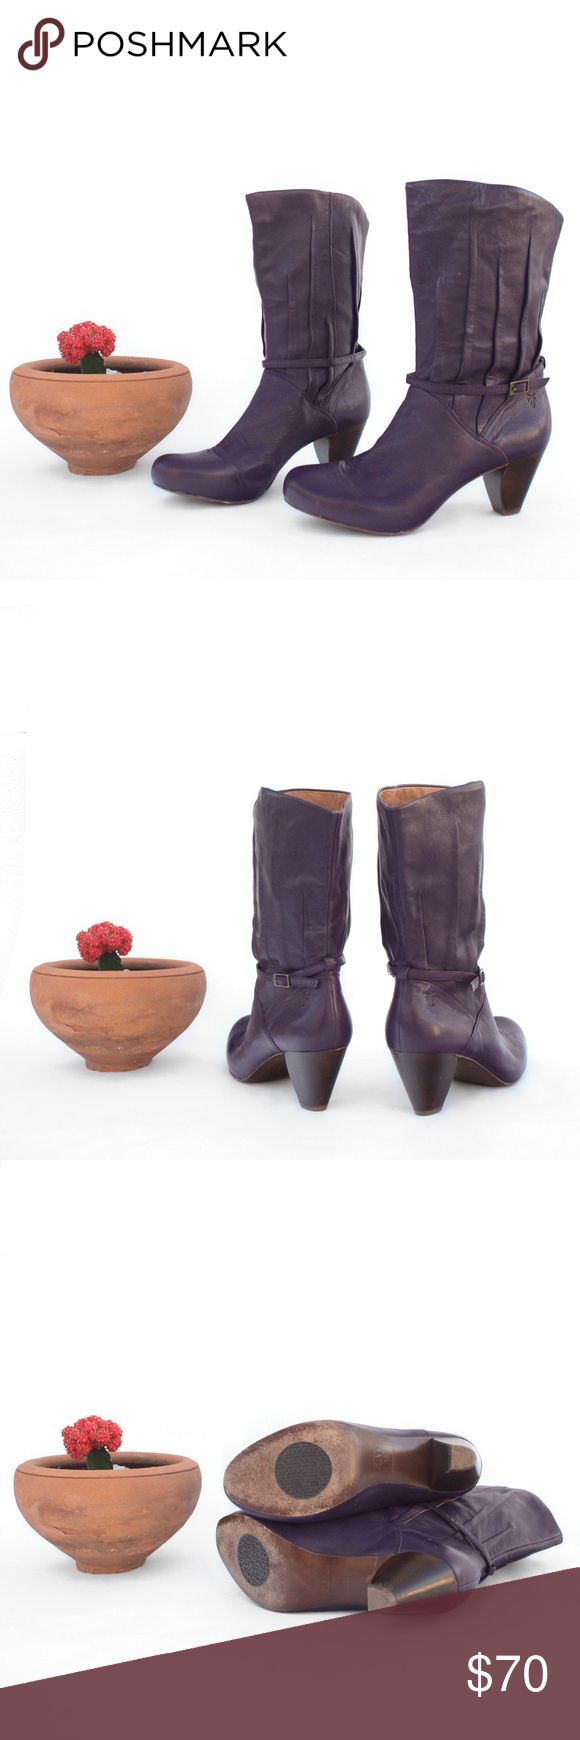 """Frye Lisa 8L Pleated Purple Boots Frye Lisa 8L Pleated Purple Boots  Women's Size 7 1/2 M Measurements: Insole - 9 3/4"""" Outsole - 10"""" Height - 10"""" Heel - 2"""" Ball of foot - 3 1/8"""" Circumference - 13"""" Frye Shoes Heeled Boots"""